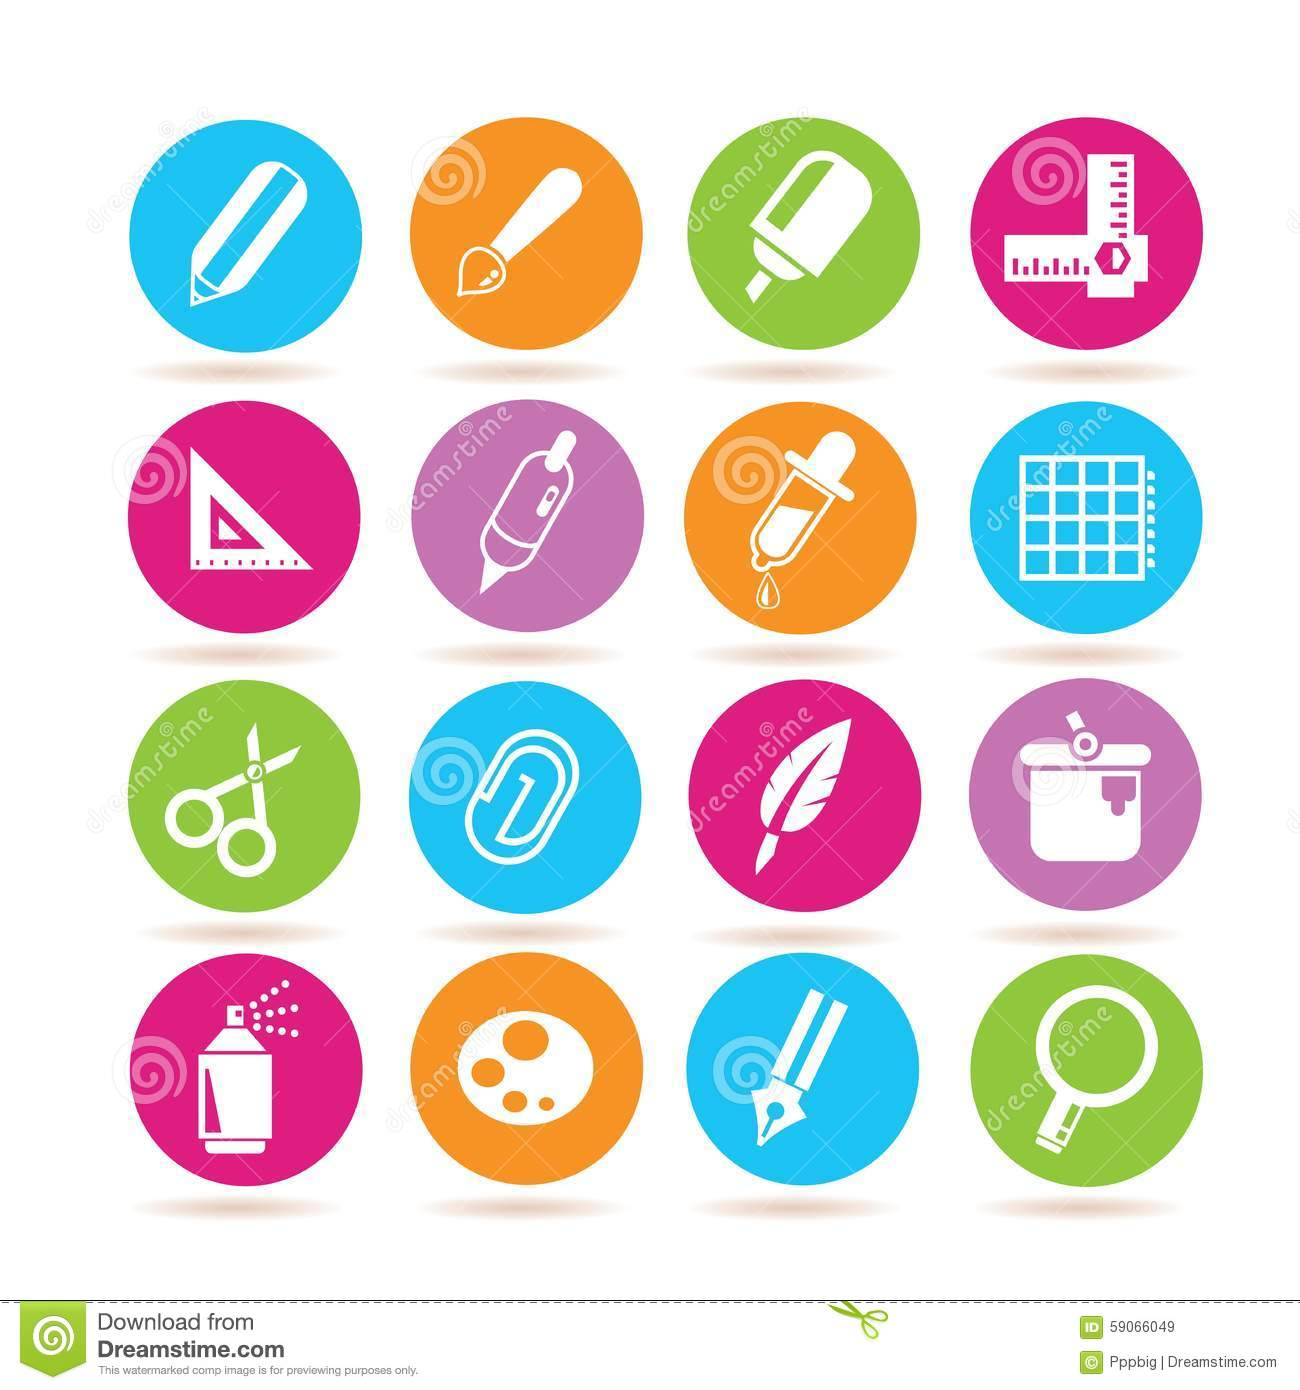 Graphic Design Tool Icons Stock Illustration - Image: 59066049